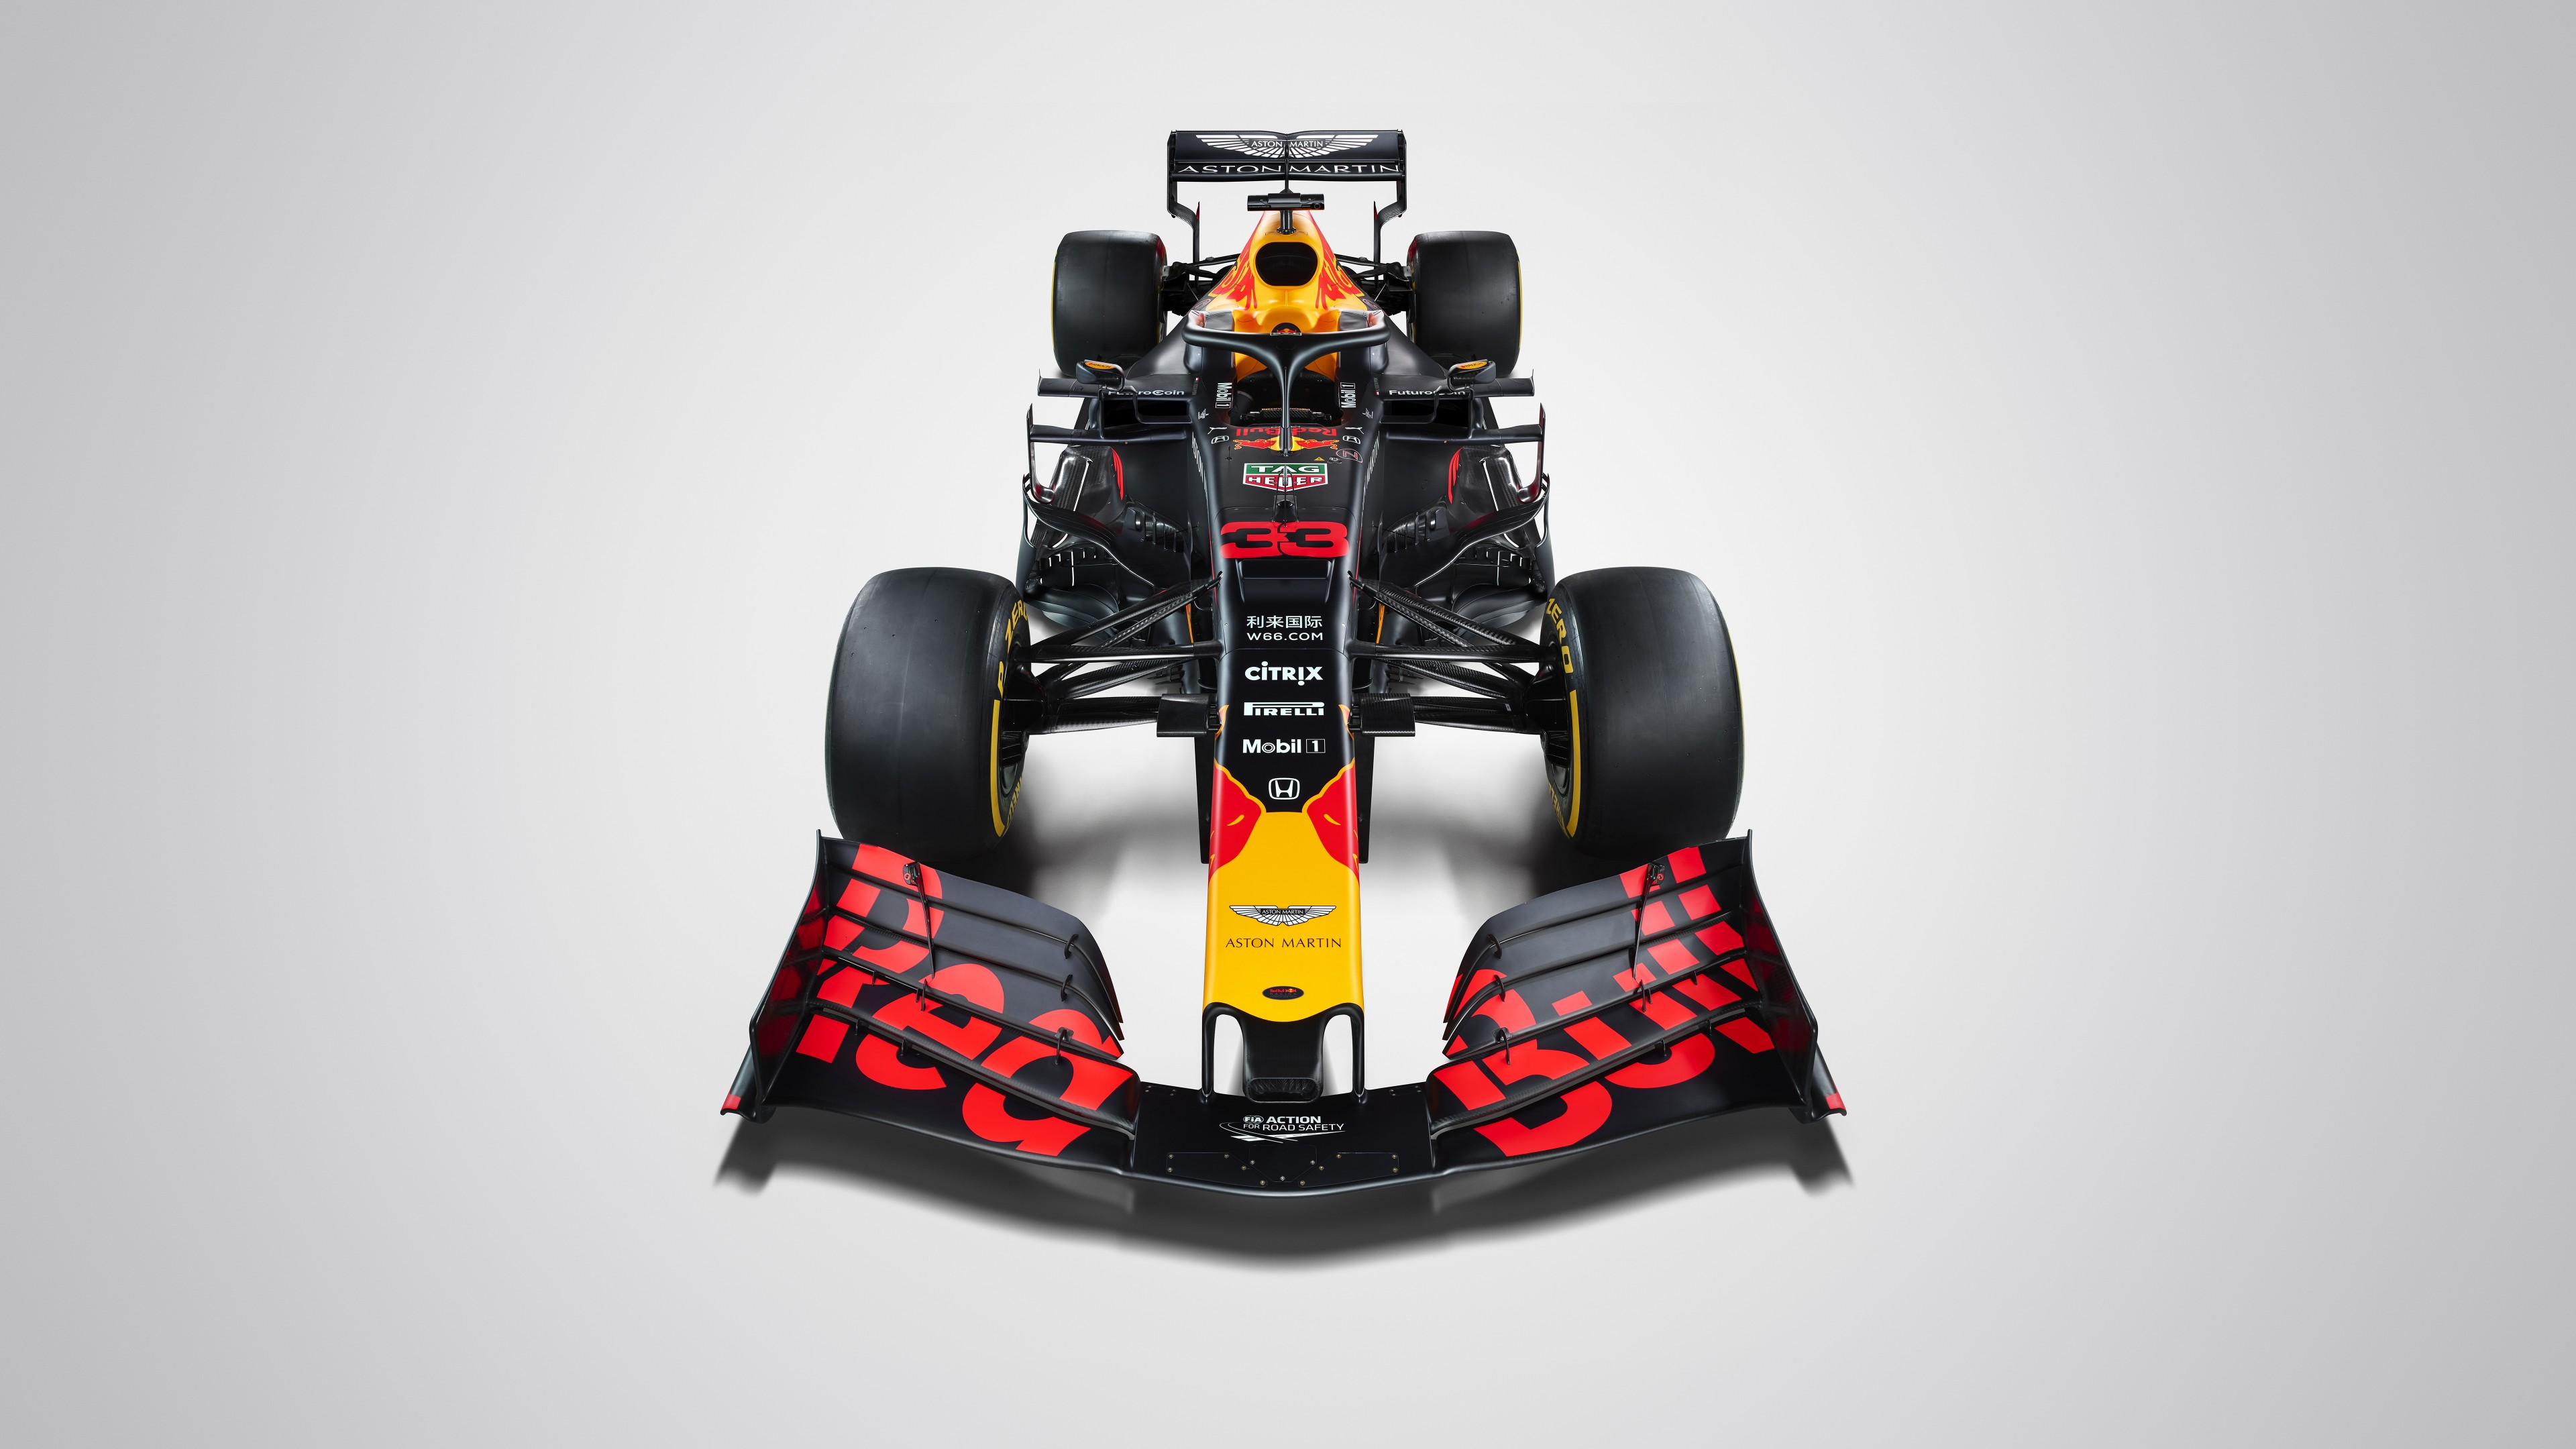 Red Bull Wallpaper Hd Iphone Red Bull Rb15 F1 2019 4k 8k Wallpapers Hd Wallpapers